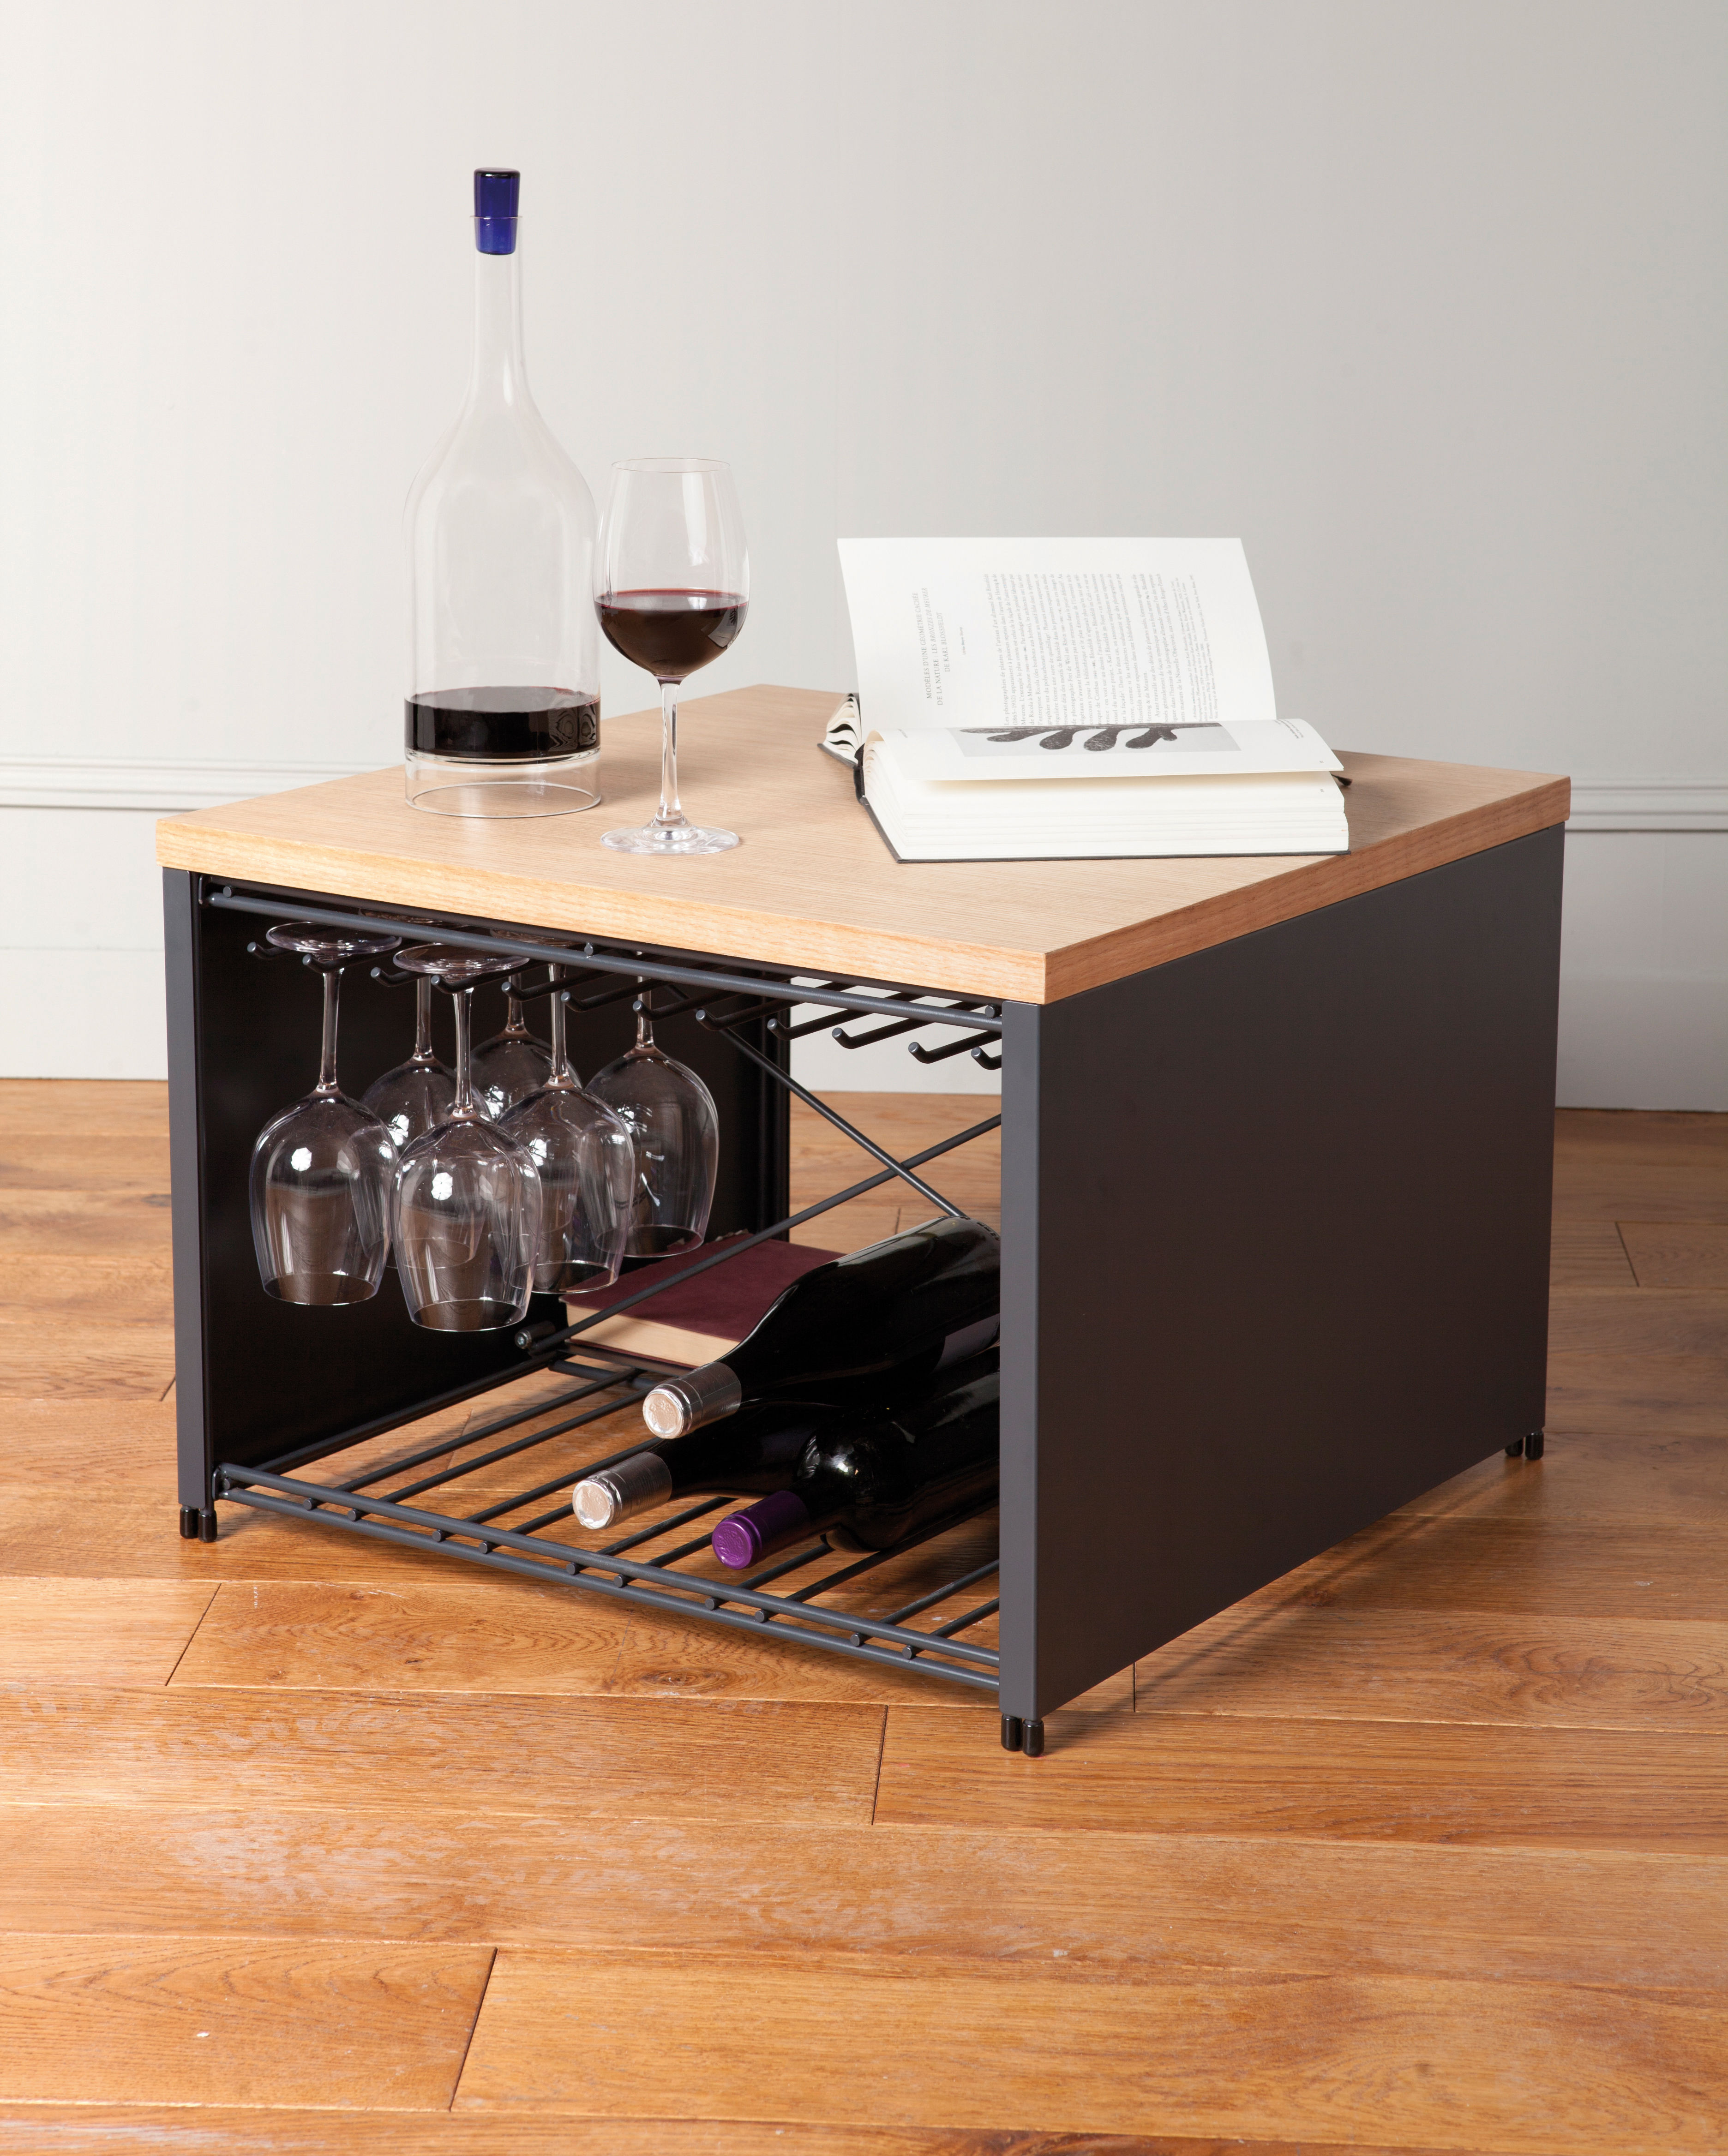 Petit bar coffee table glass and bottle holder 57 x 57 for Table bar 85 cm